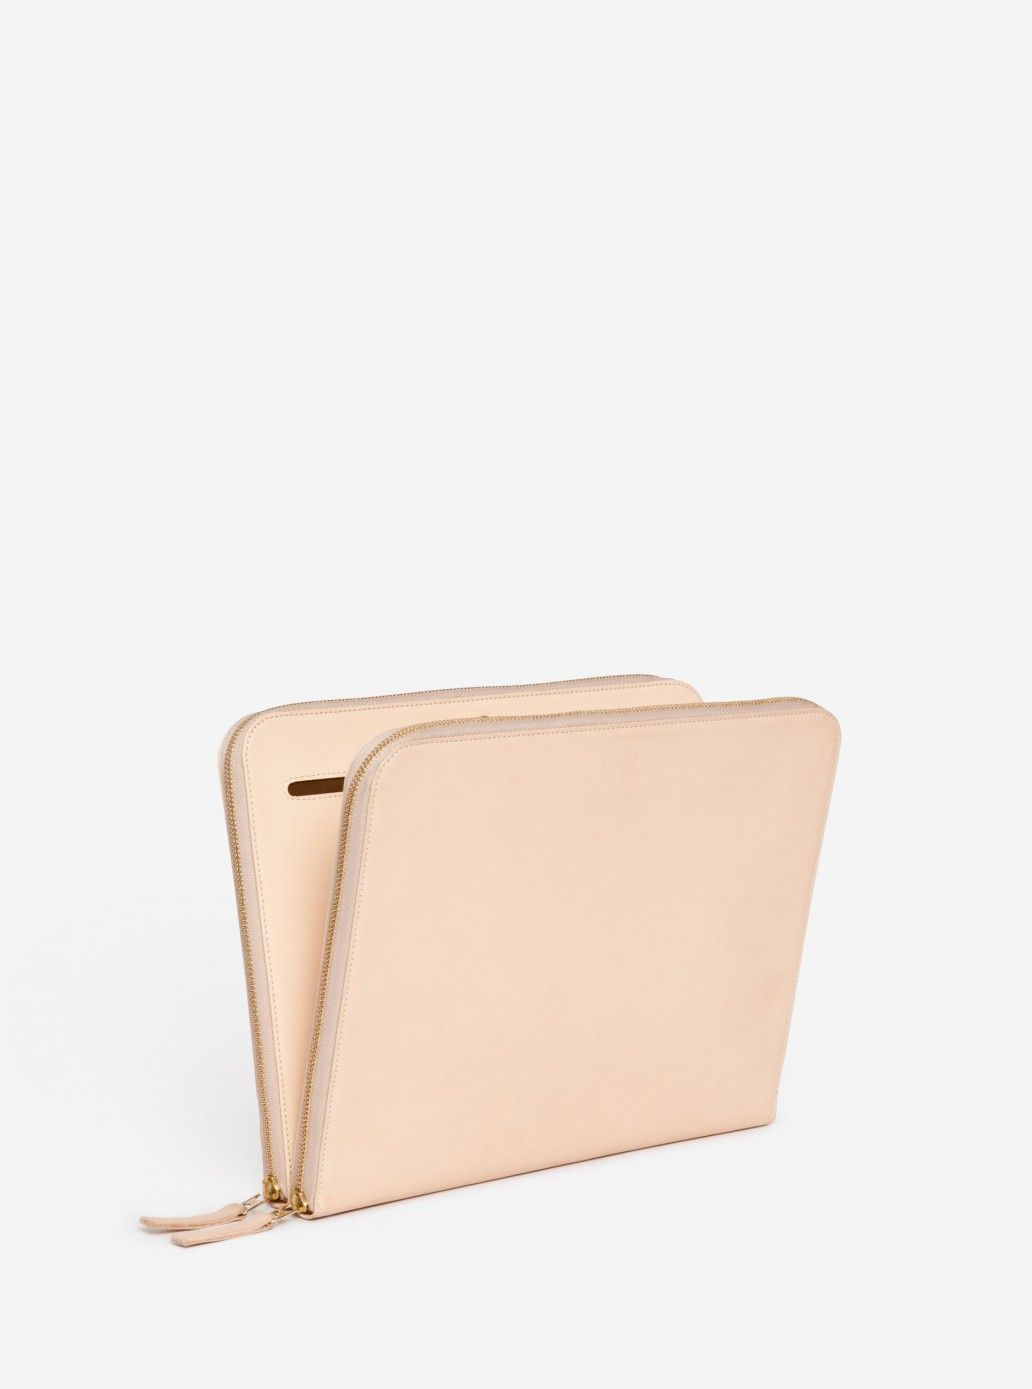 cm6-ipad-case-natural-leather-SR